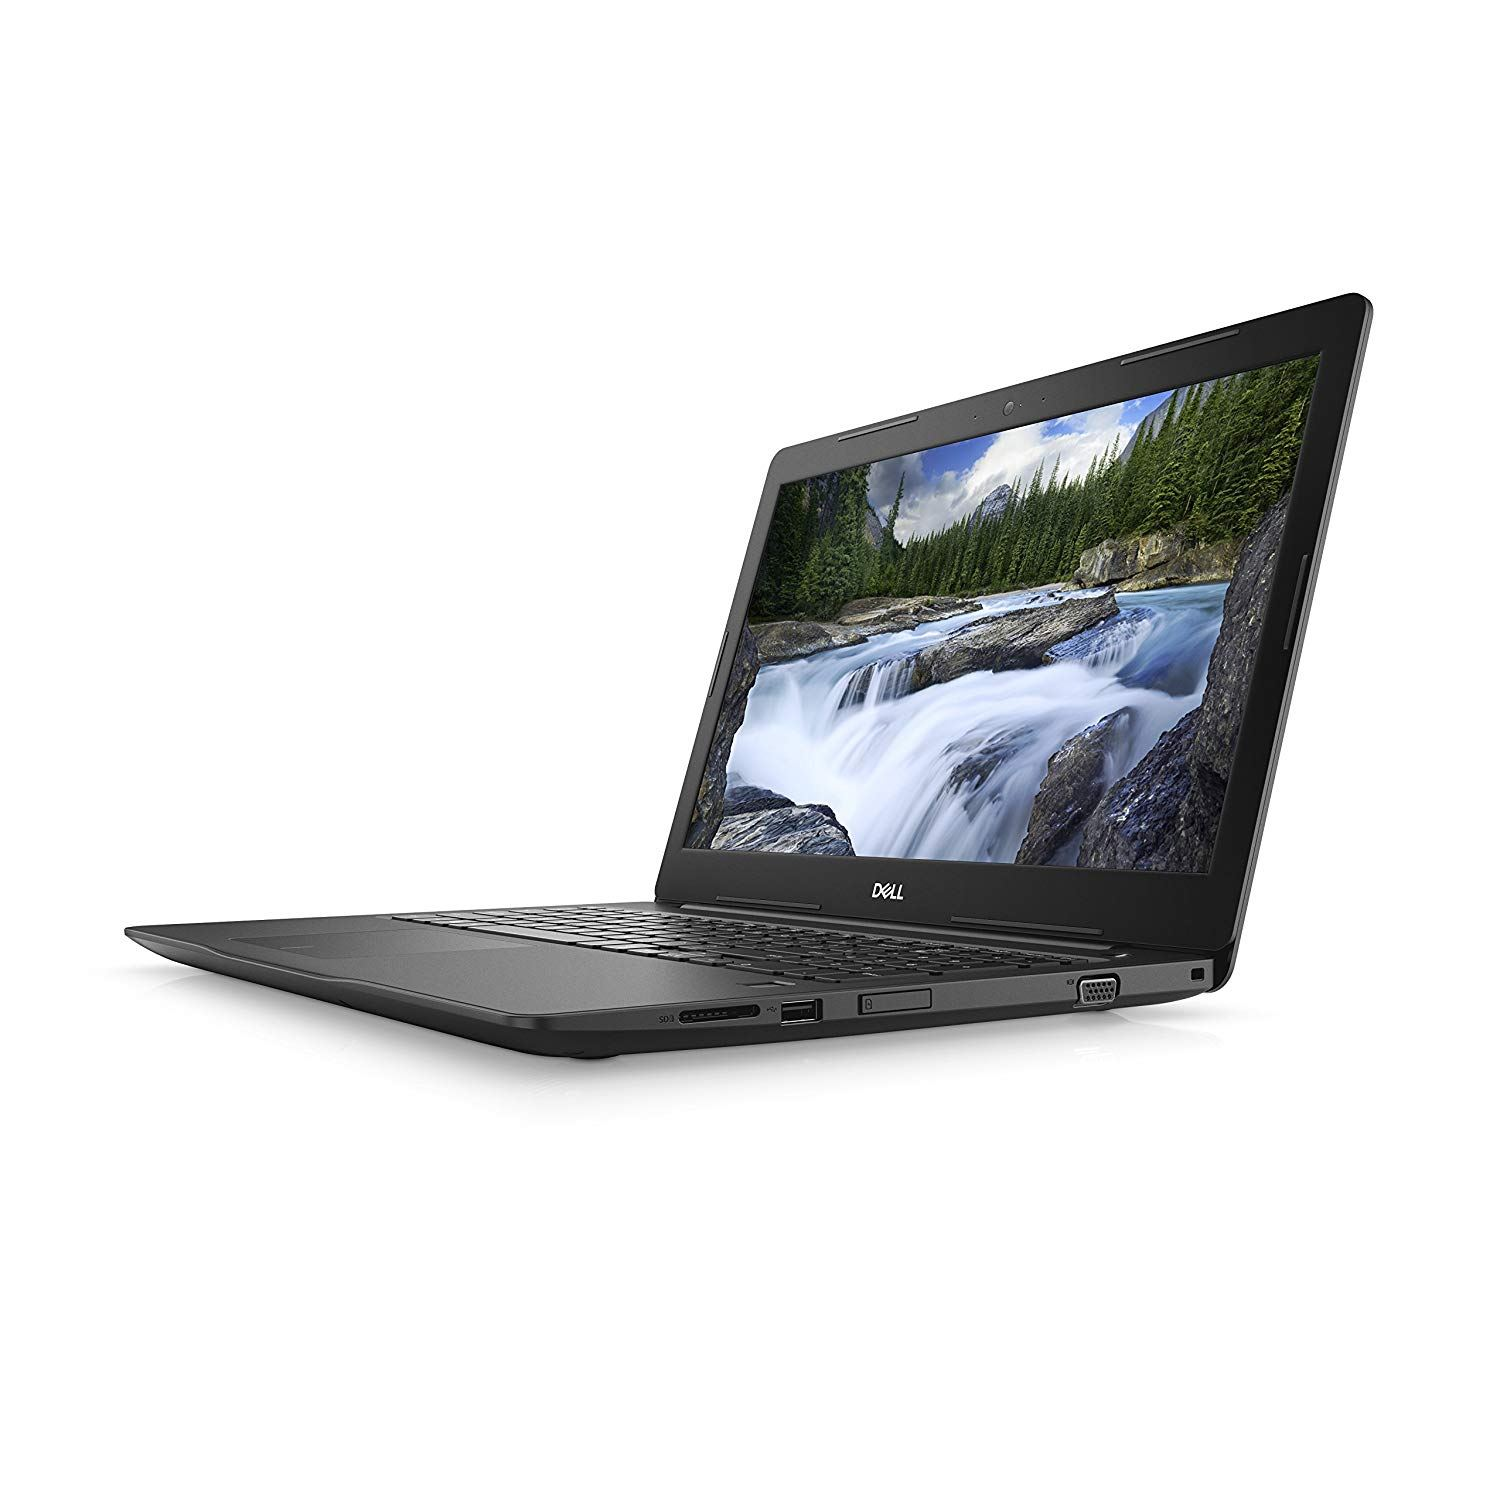 "DELL N5004VN3590EMEA_UB VOSTRO 3590 I5-10210U 8GB 1TB O/B VGA 15.6"" FREEDOS NOTEBOOK"